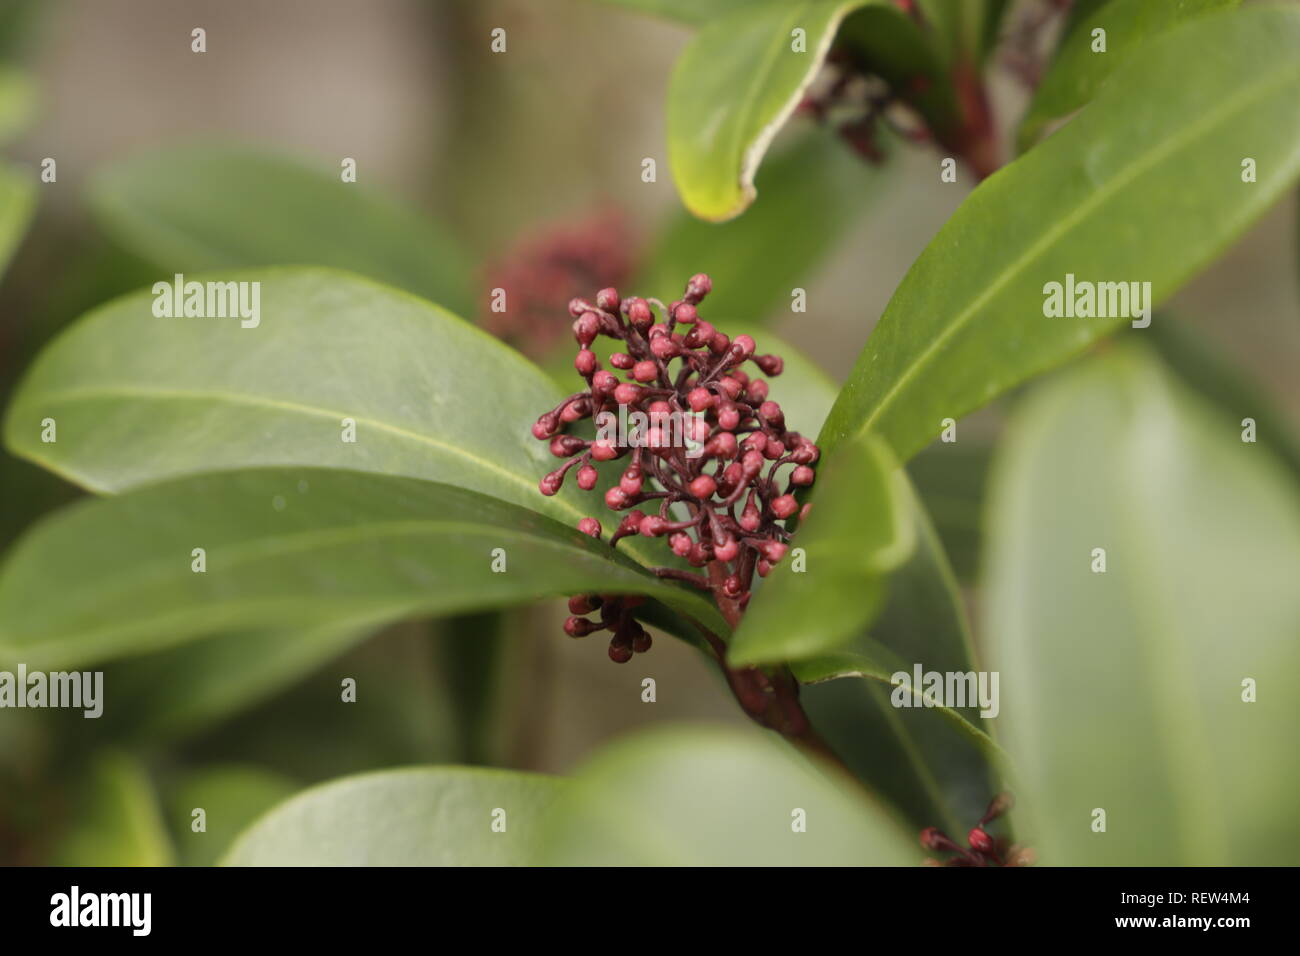 Skimmia is a very popular plant for it's red flower buds and beautiful green leaves - Stock Image